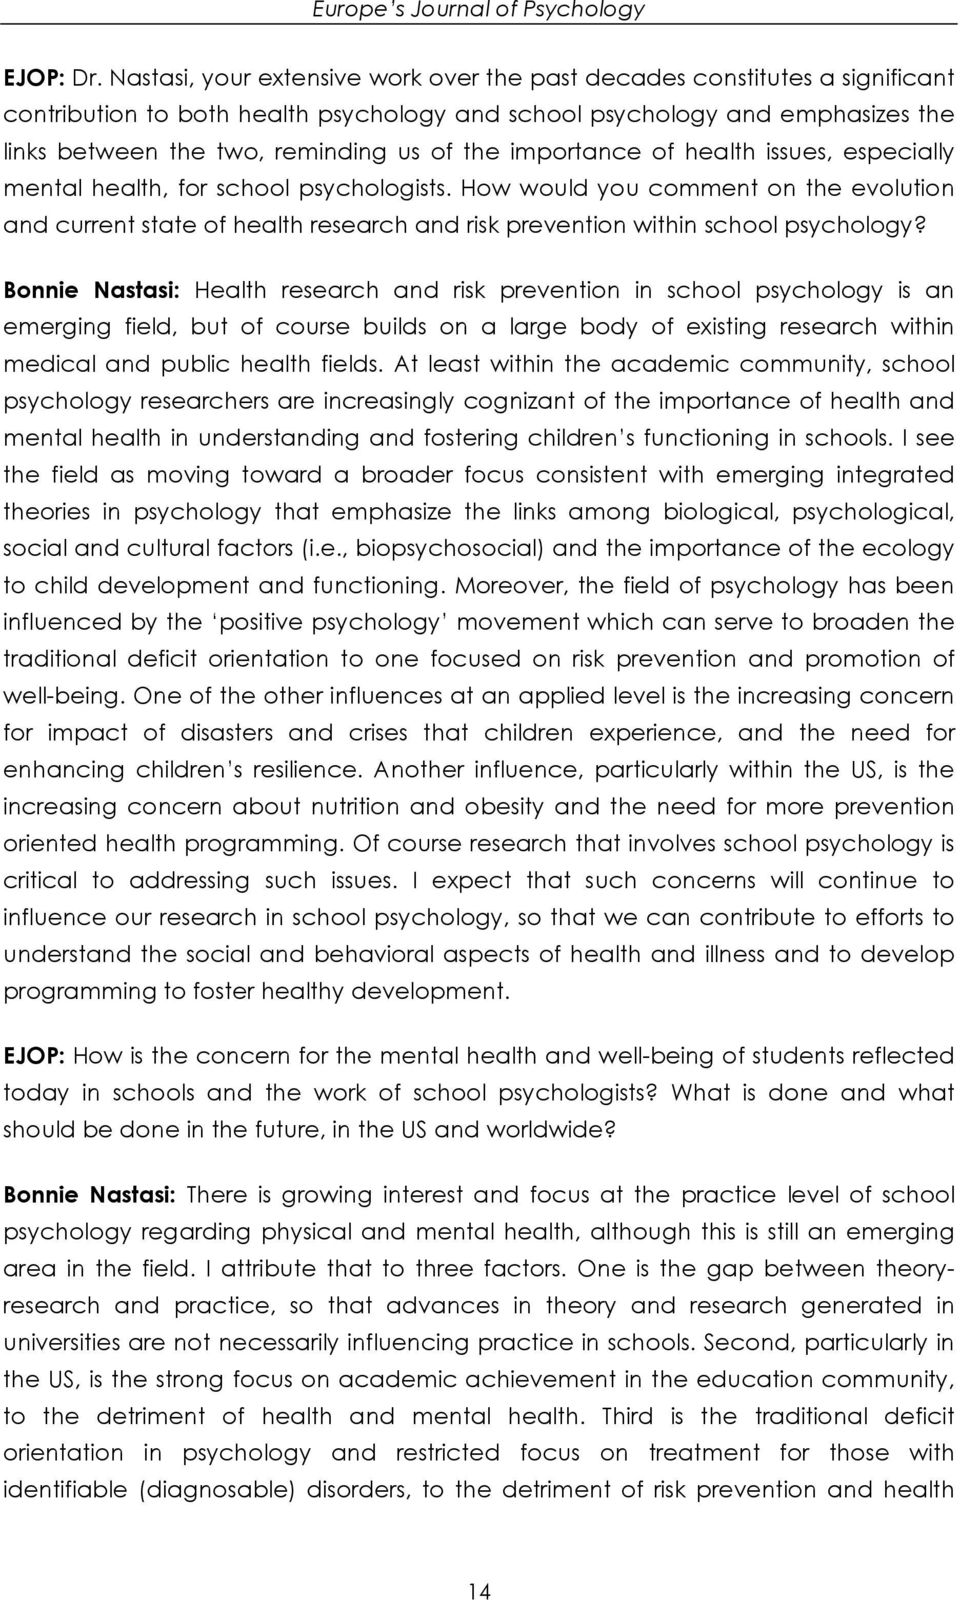 importance of health issues, especially mental health, for school psychologists.